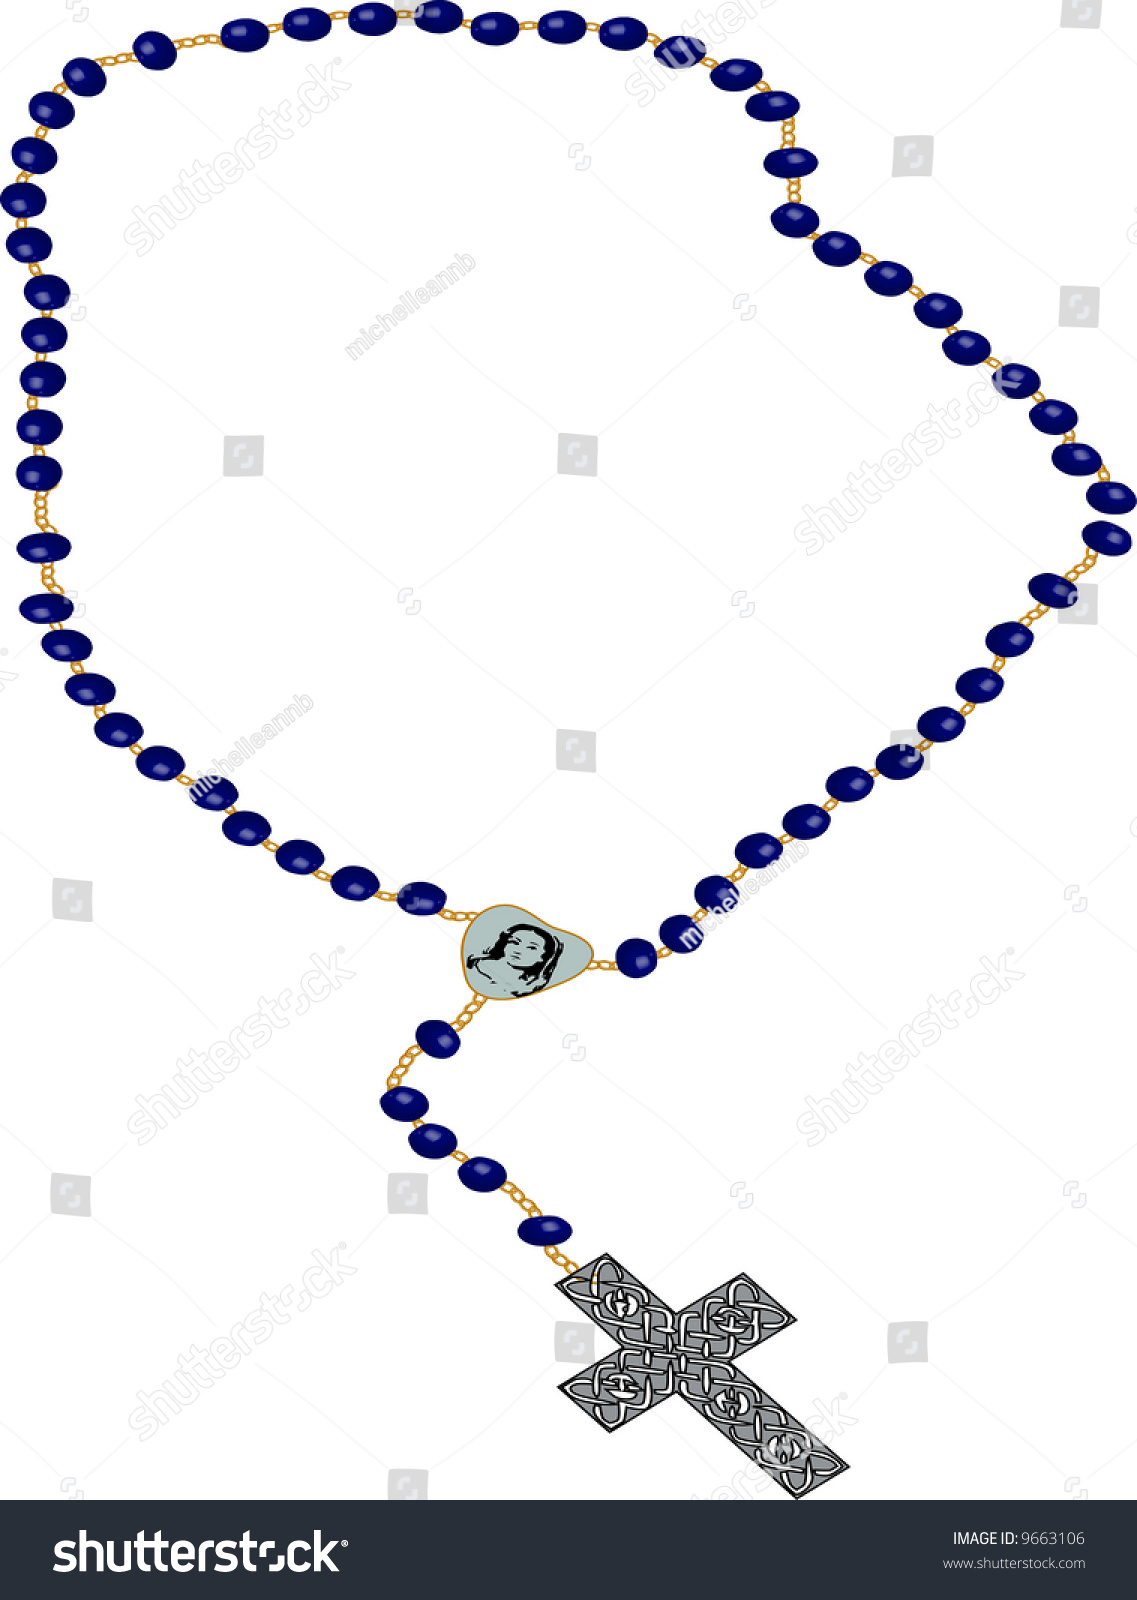 rosary clipart illustration on white background stock illustration rh shutterstock com holy rosary clipart clipart rosary beads